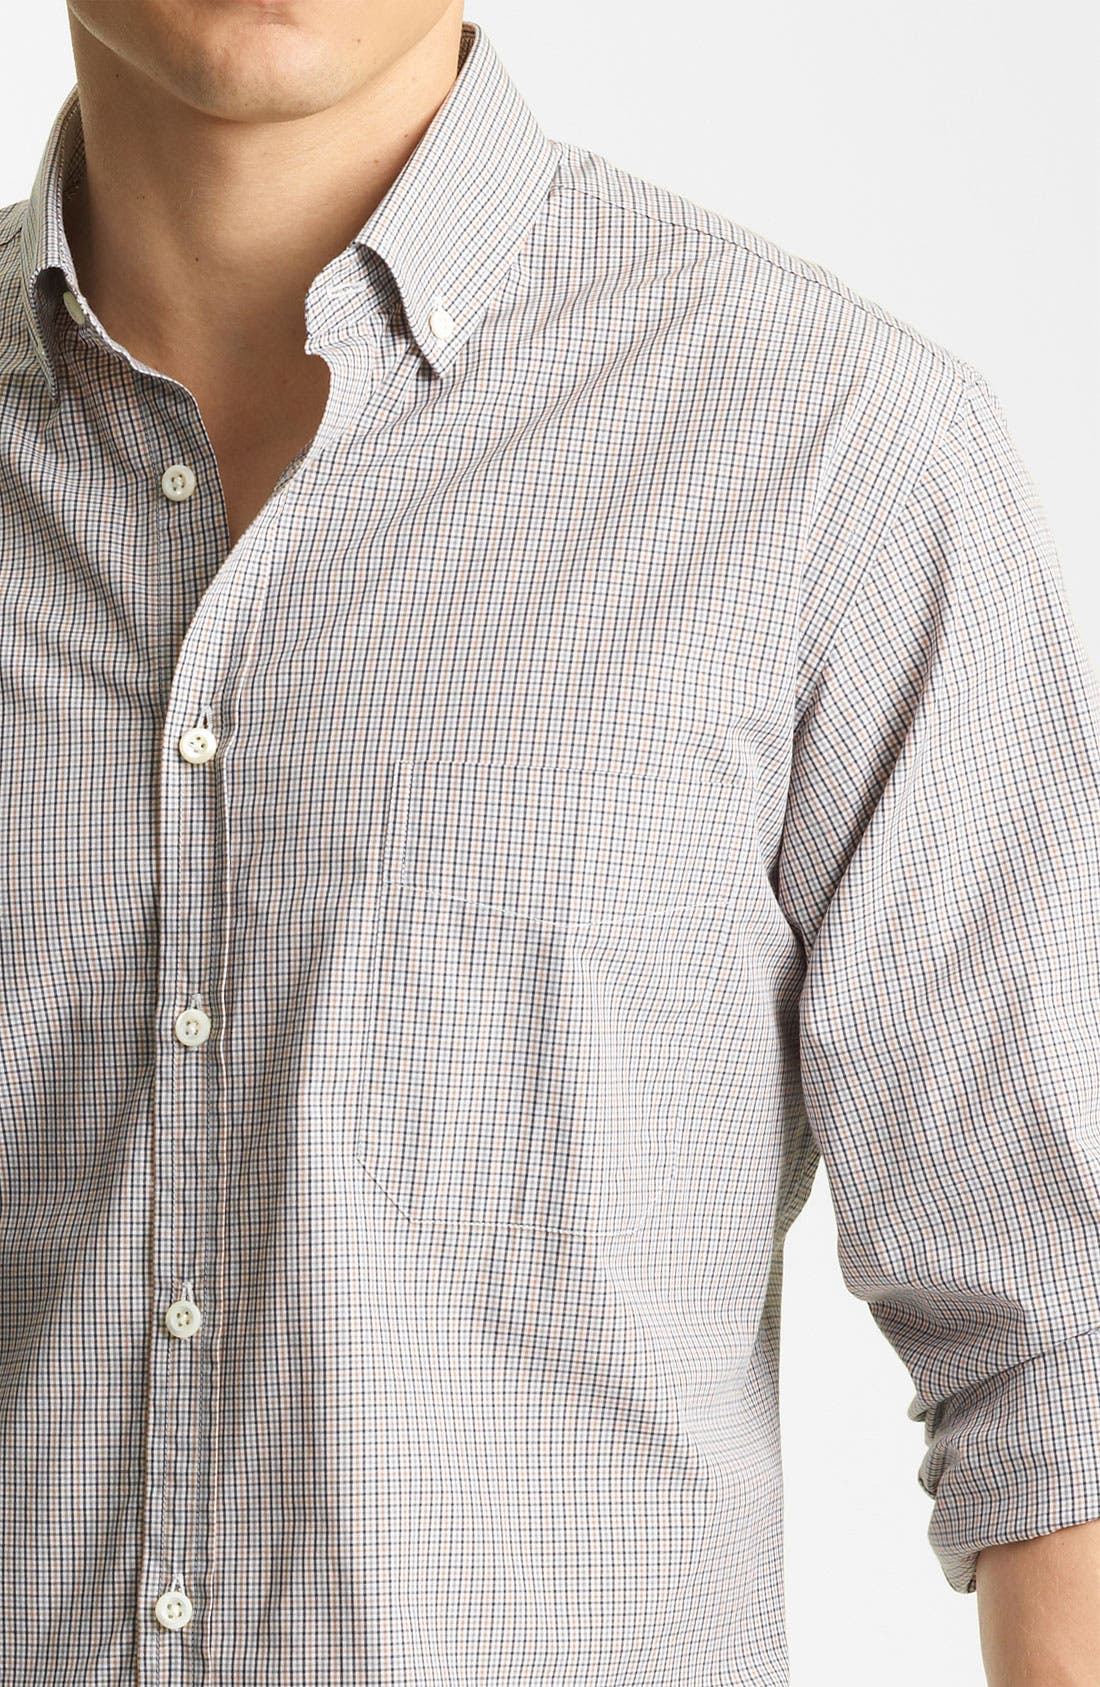 Alternate Image 3  - Billy Reid 'Rosedale' Micro Check Woven Shirt